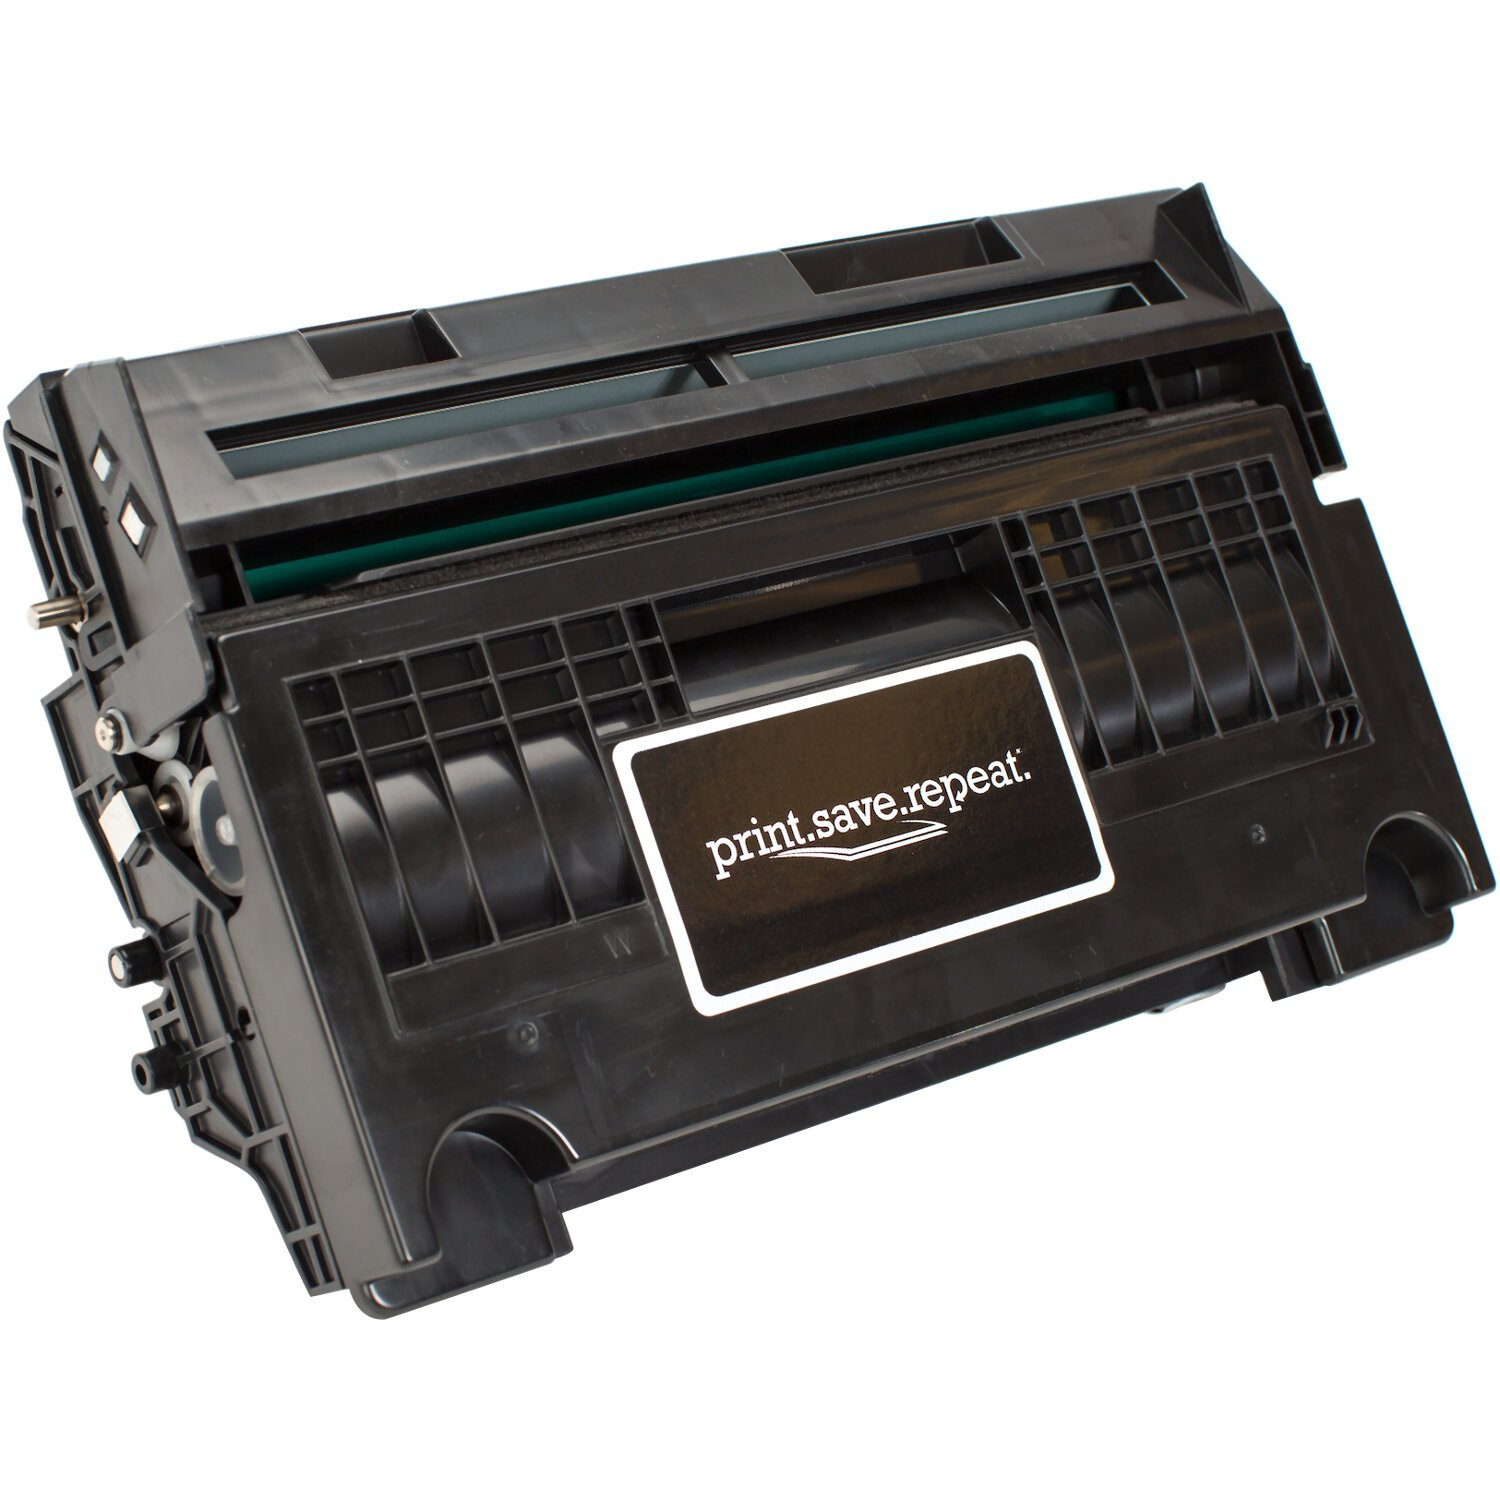 Print.Save.Repeat. Panasonic WORKiO DP190 (DQ-UG27H & DQ-UH35H) Remanufactured All-in-One Toner and Drum Cartridges